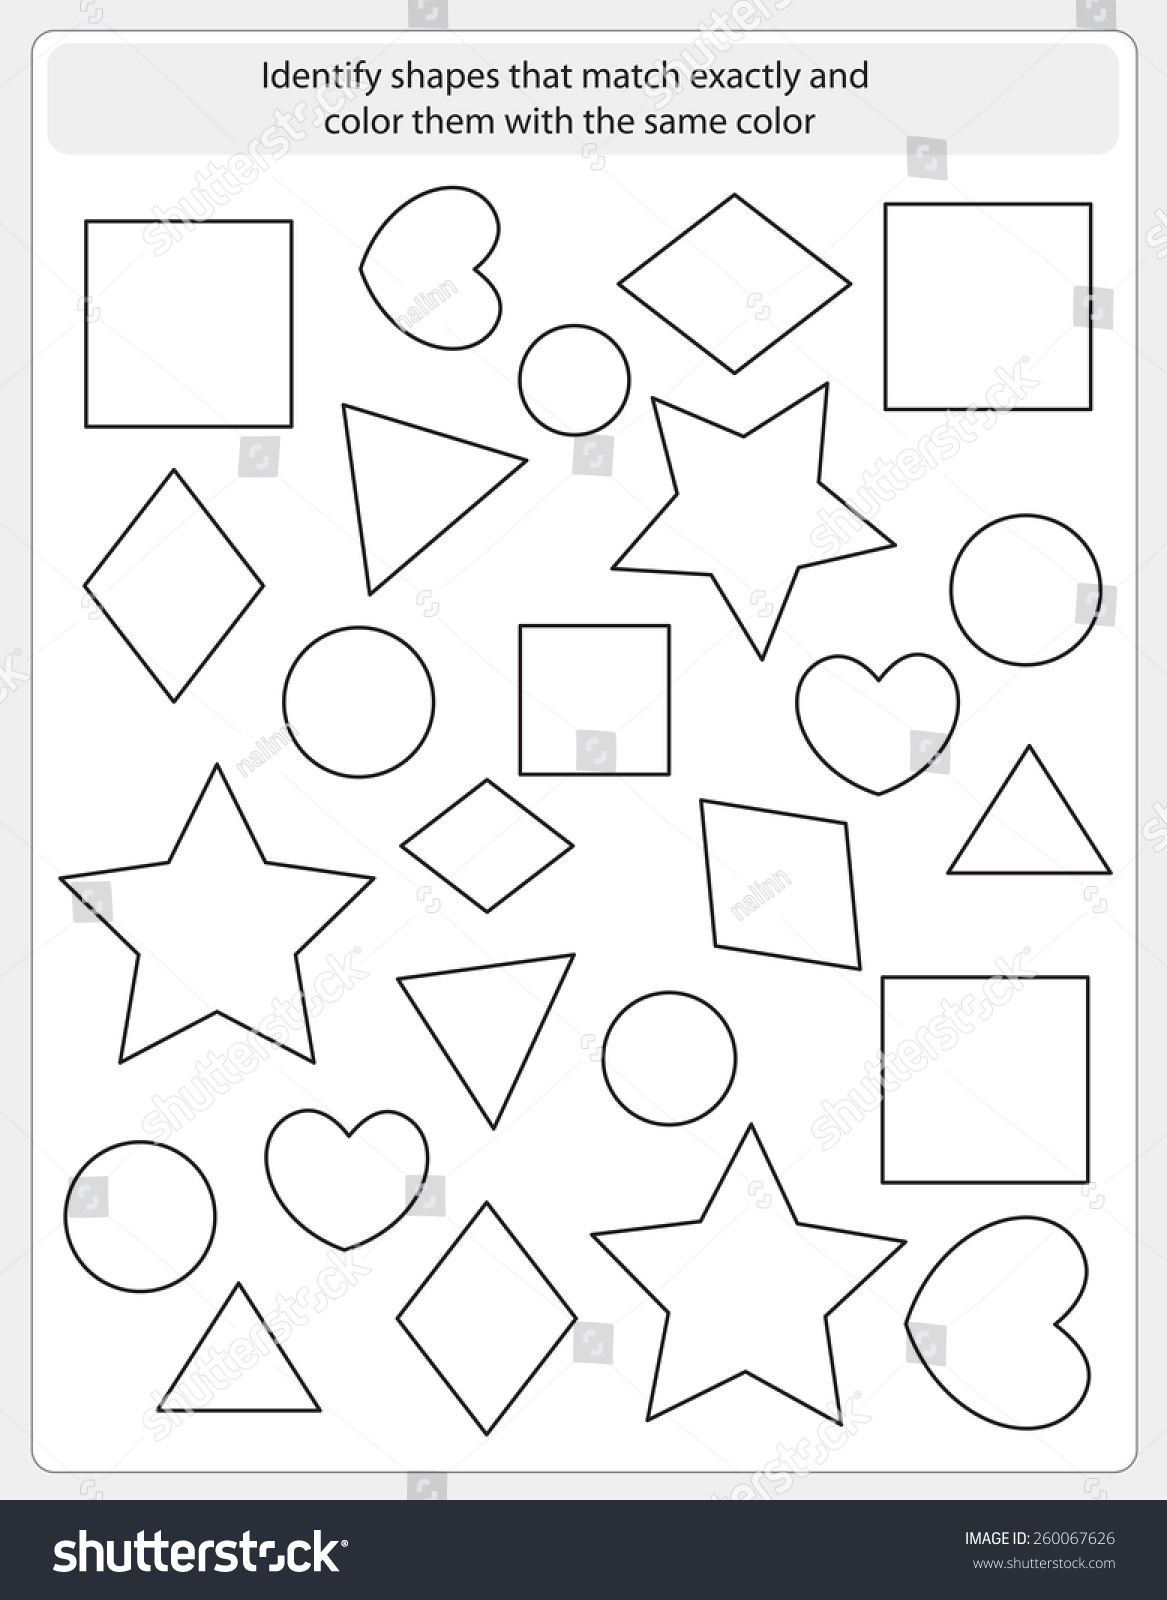 Kids Worksheet Shapes Match Color Same Stock Vector